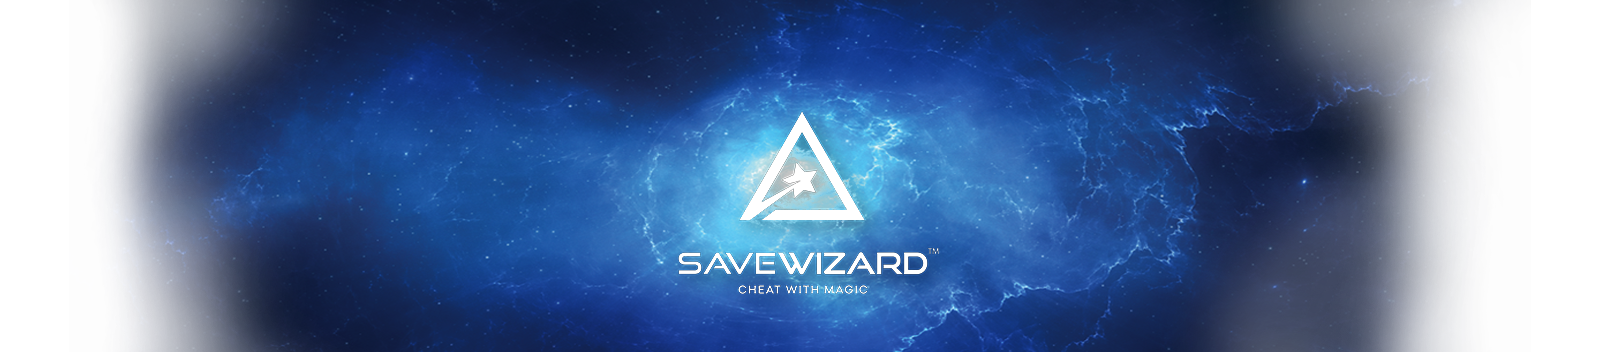 Save Wizard